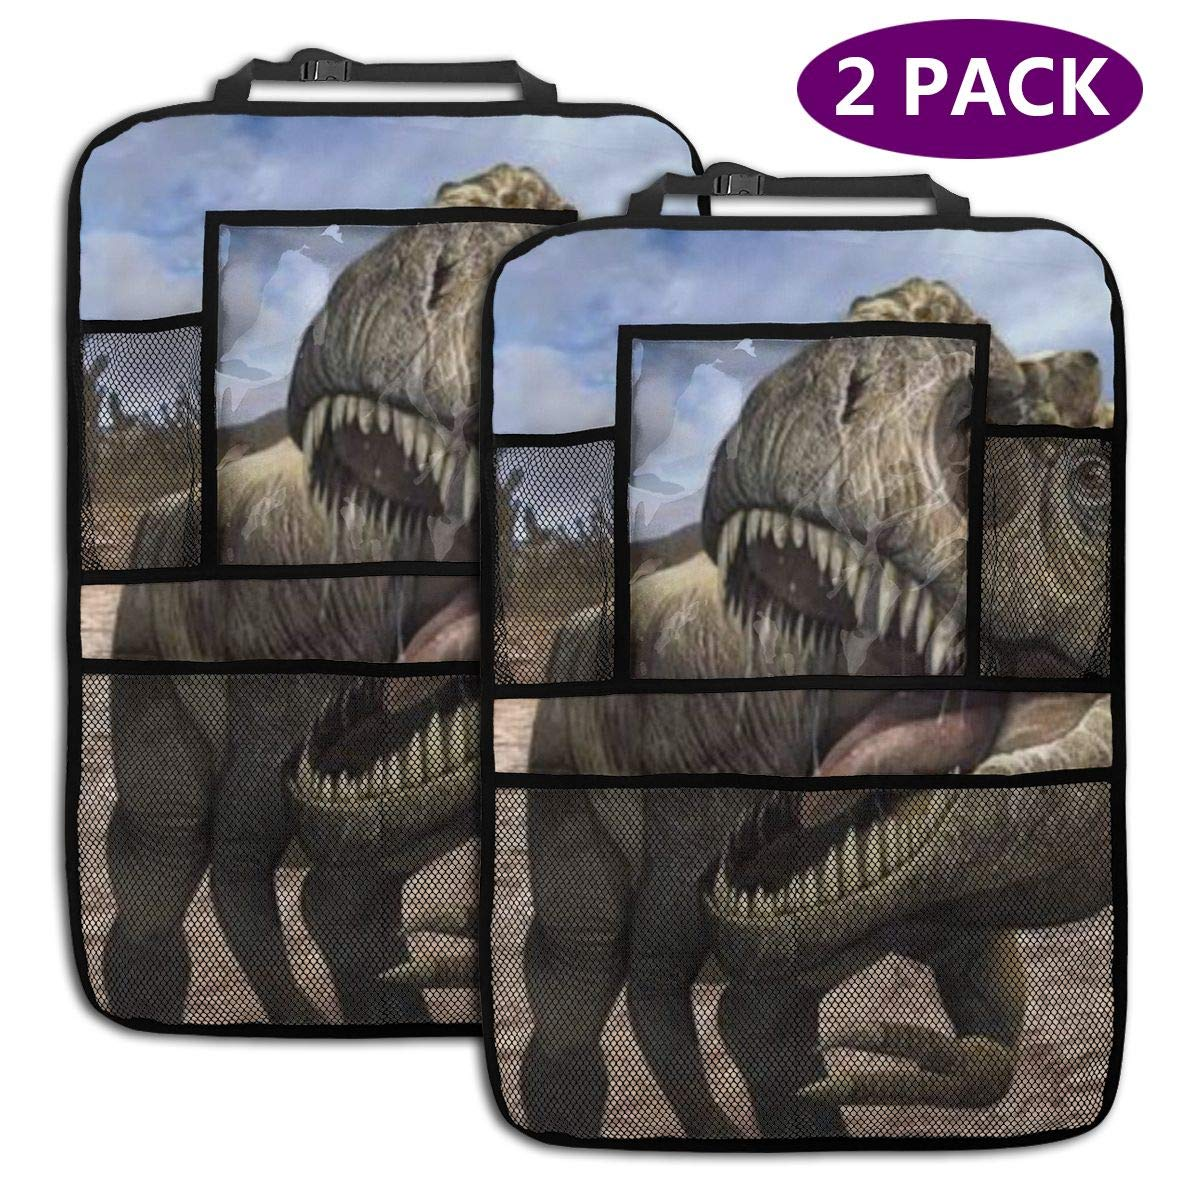 QF6FEICHAN Huge Dinosaur T Rex Car Seat Back Protectors with Storage Pockets Kick Mats Accessories for Kids and Toddlers by QF6FEICHAN